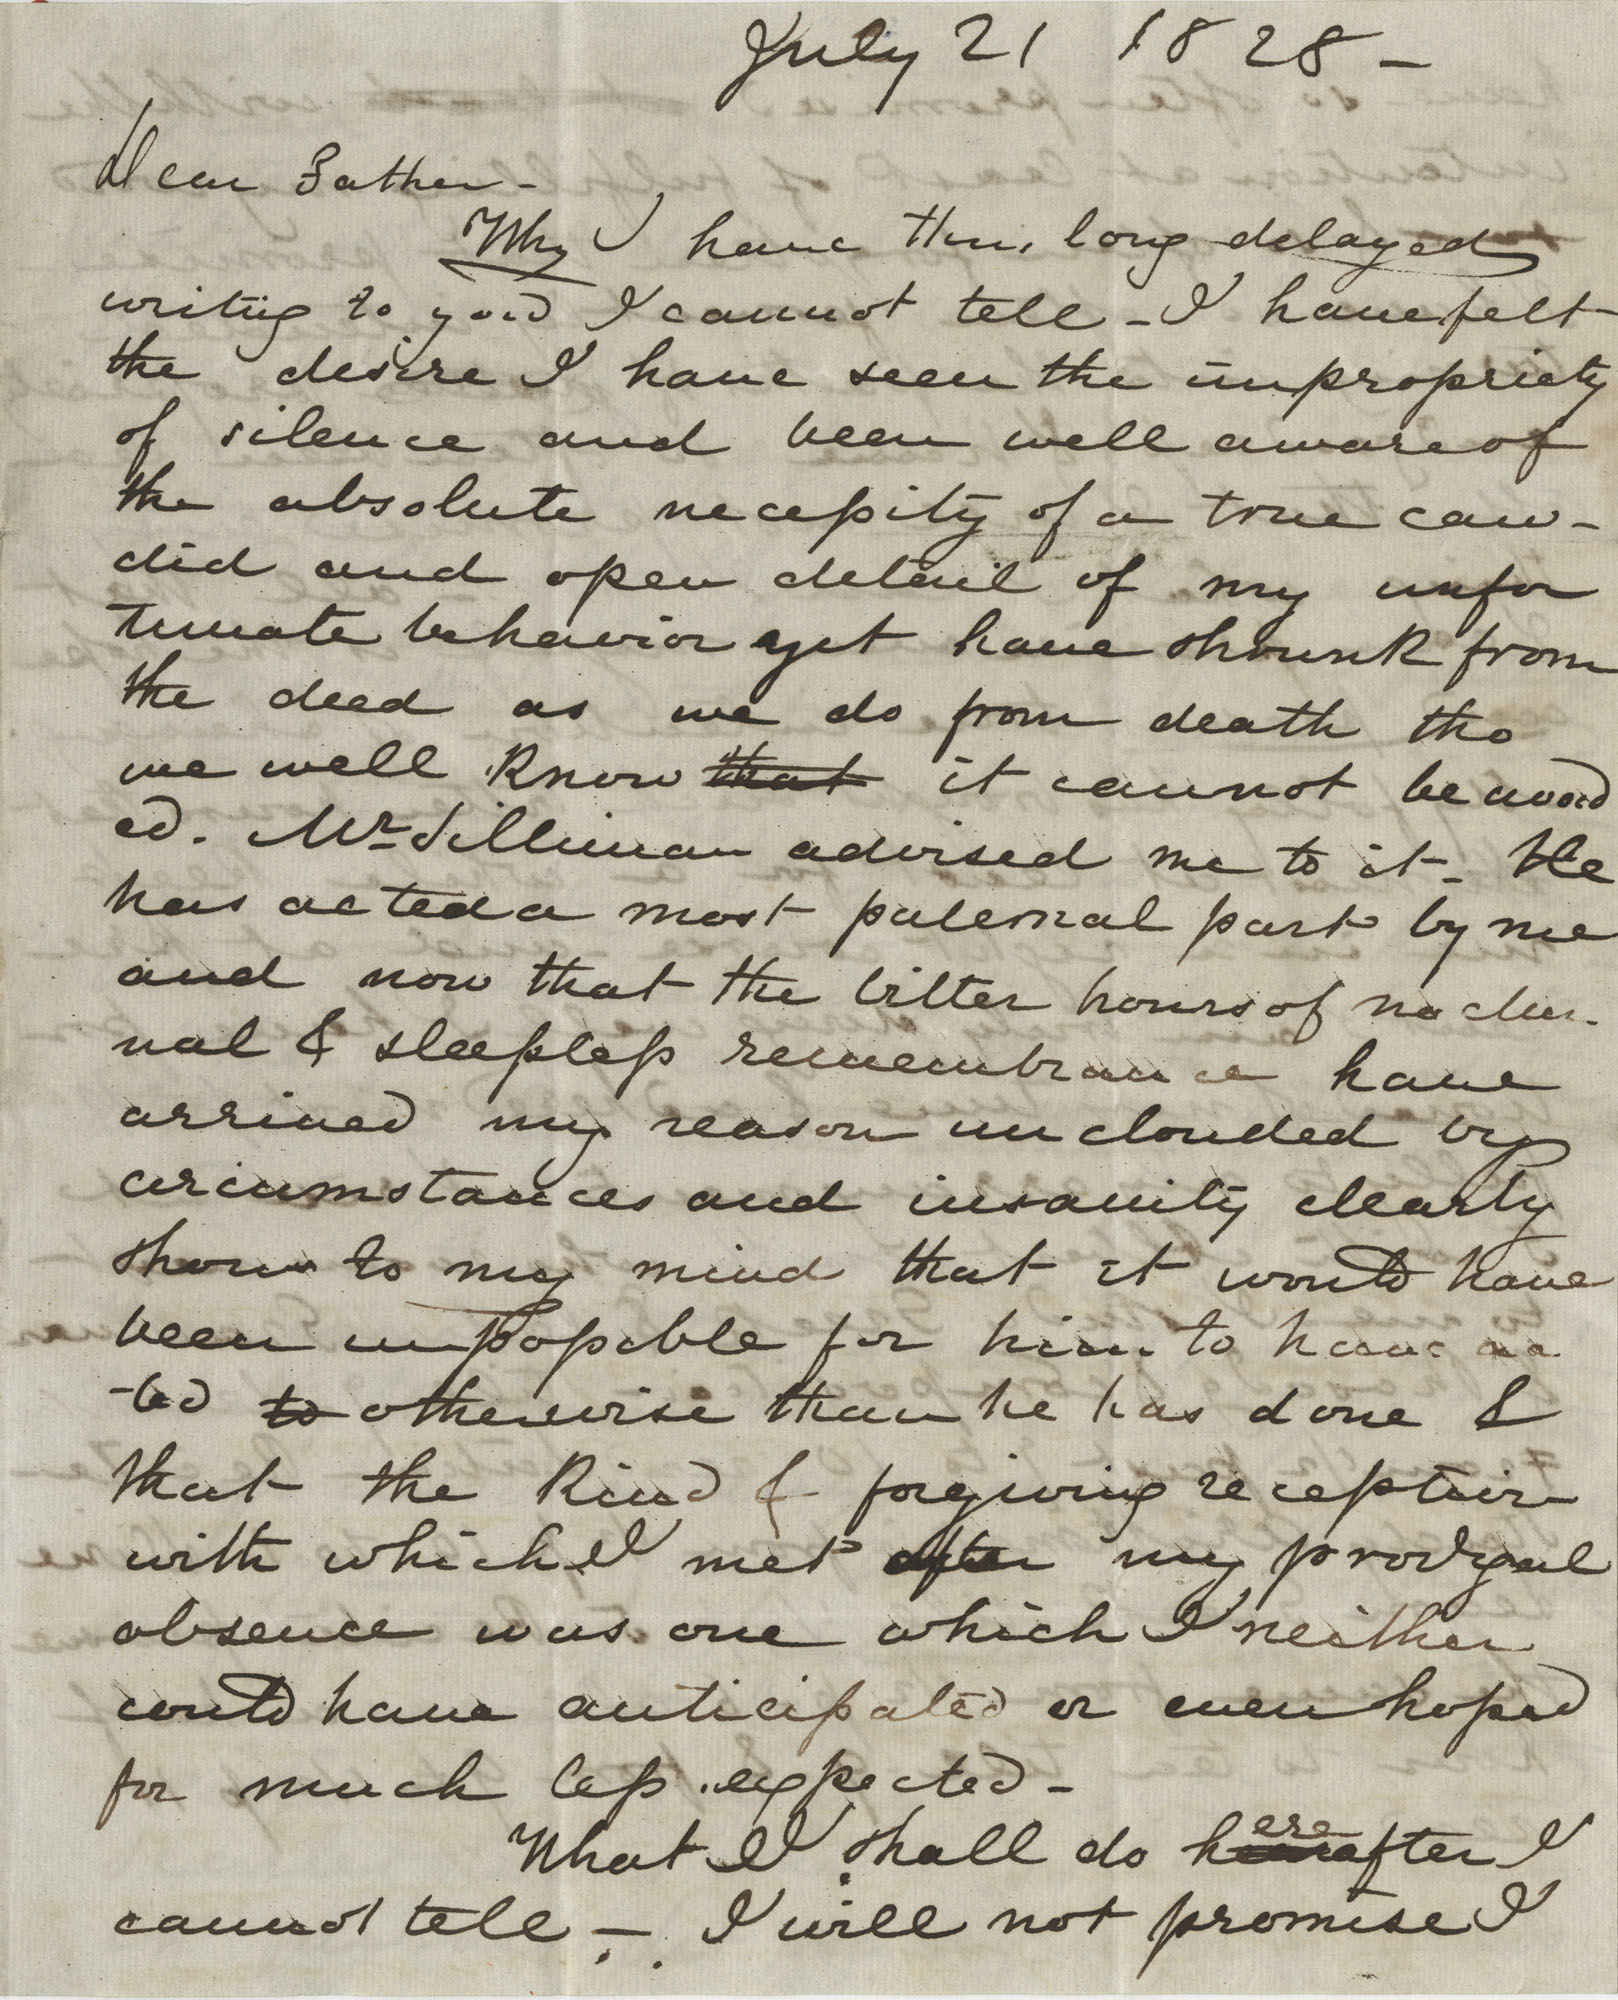 Letter from Drayton Grimke to his father, Thomas S. Grimke, July 21, 1828